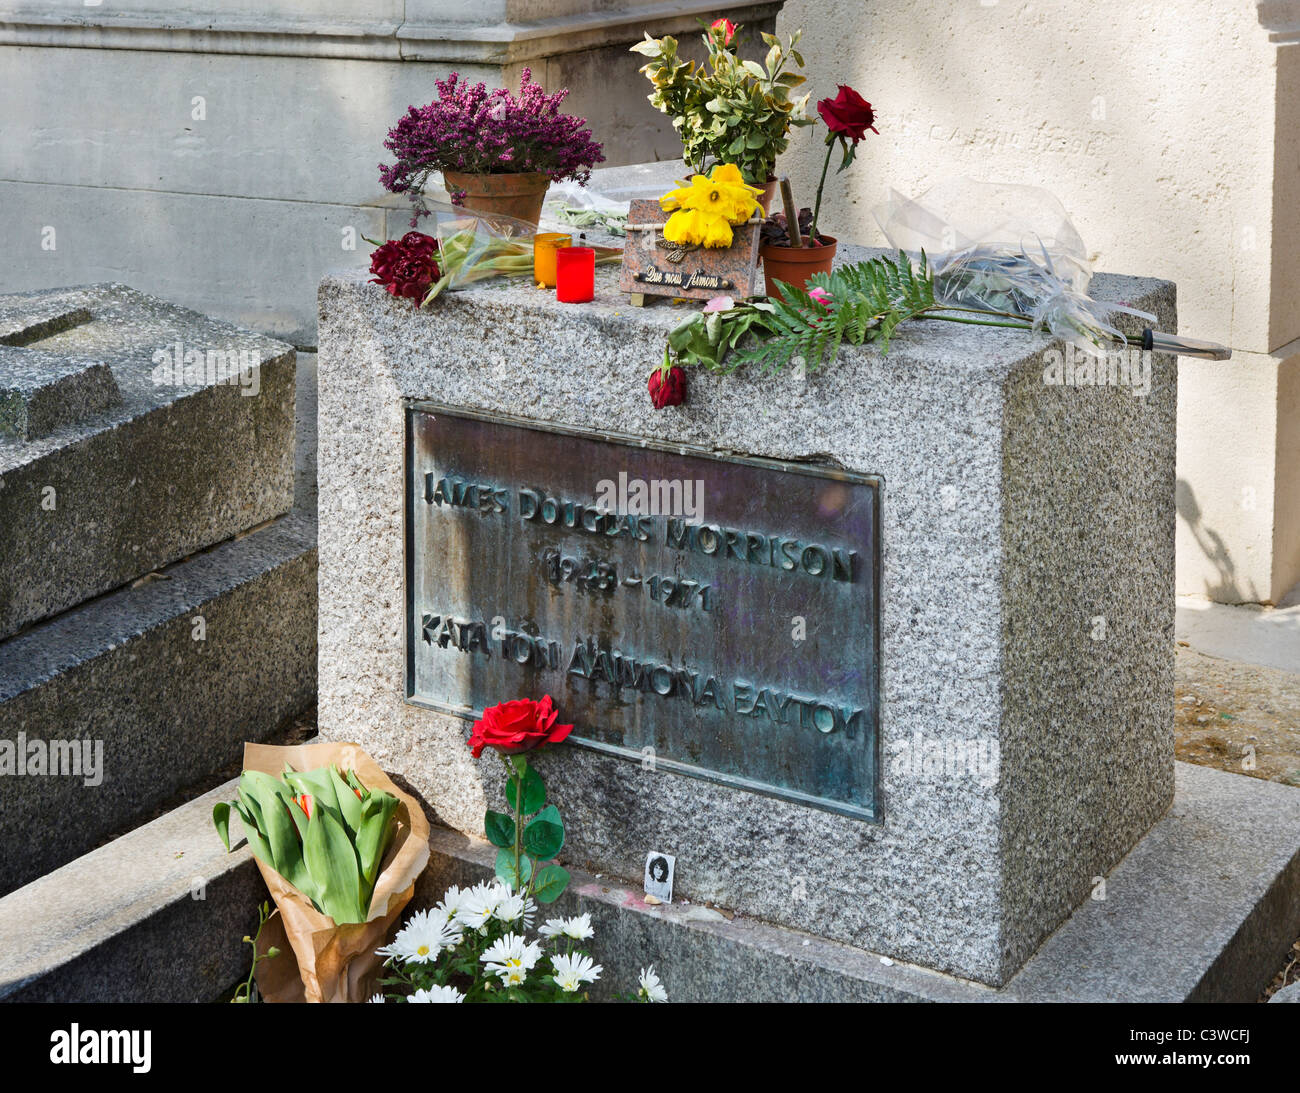 The Doors singer Jim Morrison's grave in Pere Lachaise Cemetery, 20th Arrondissement, Paris, France - Stock Image